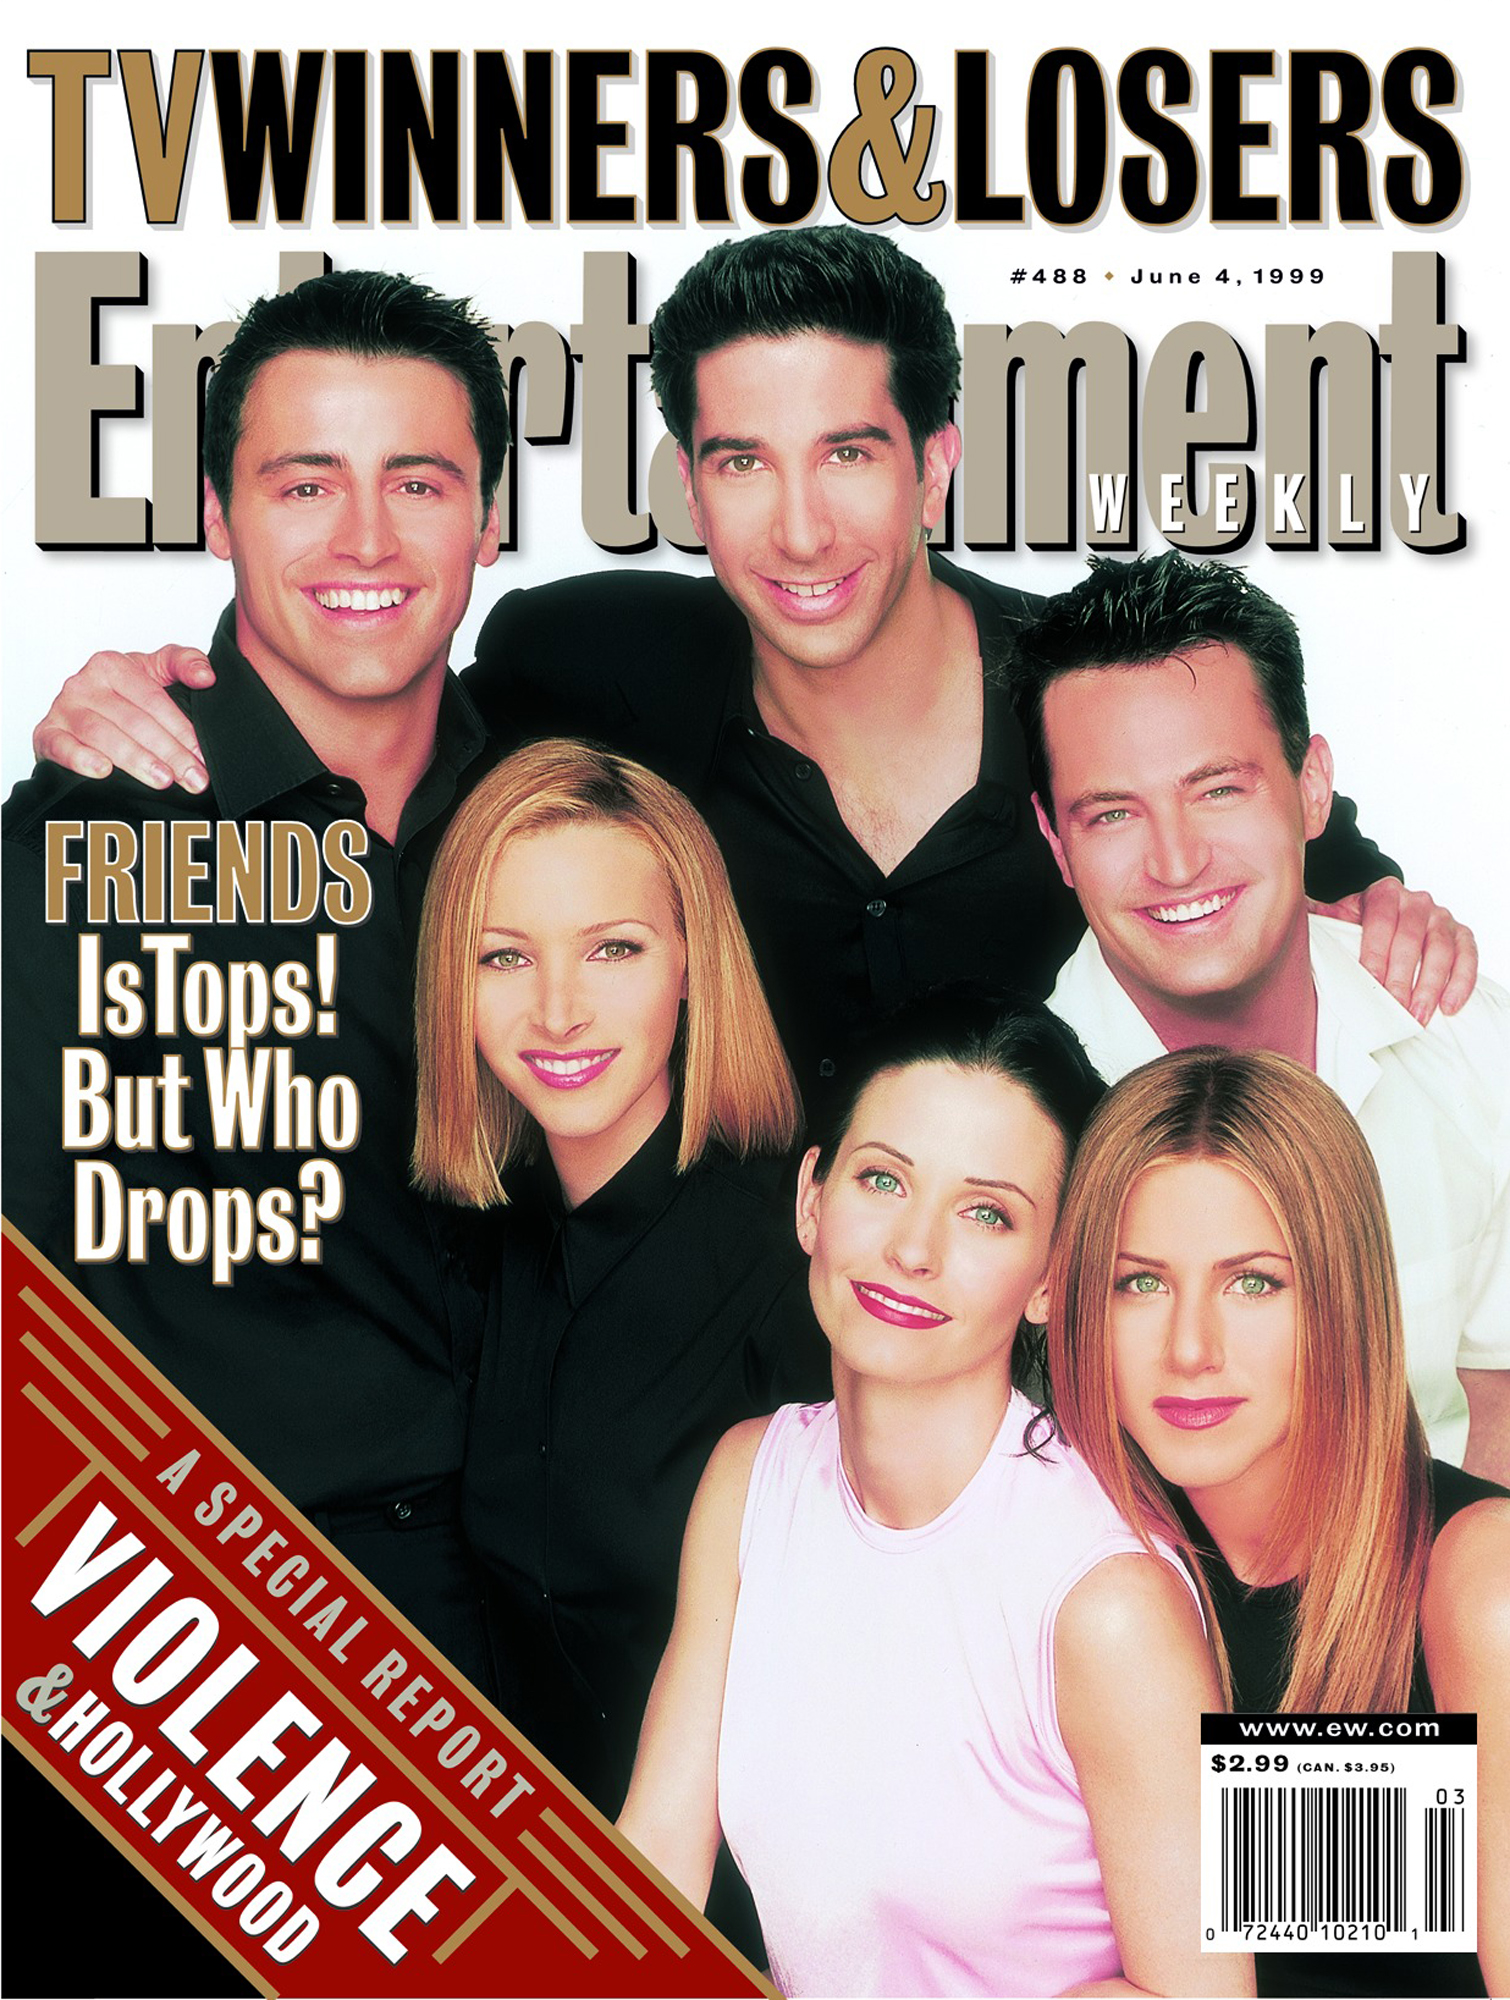 Entertainment Weekly coverIssue# 488 - 6/4/1999Friends